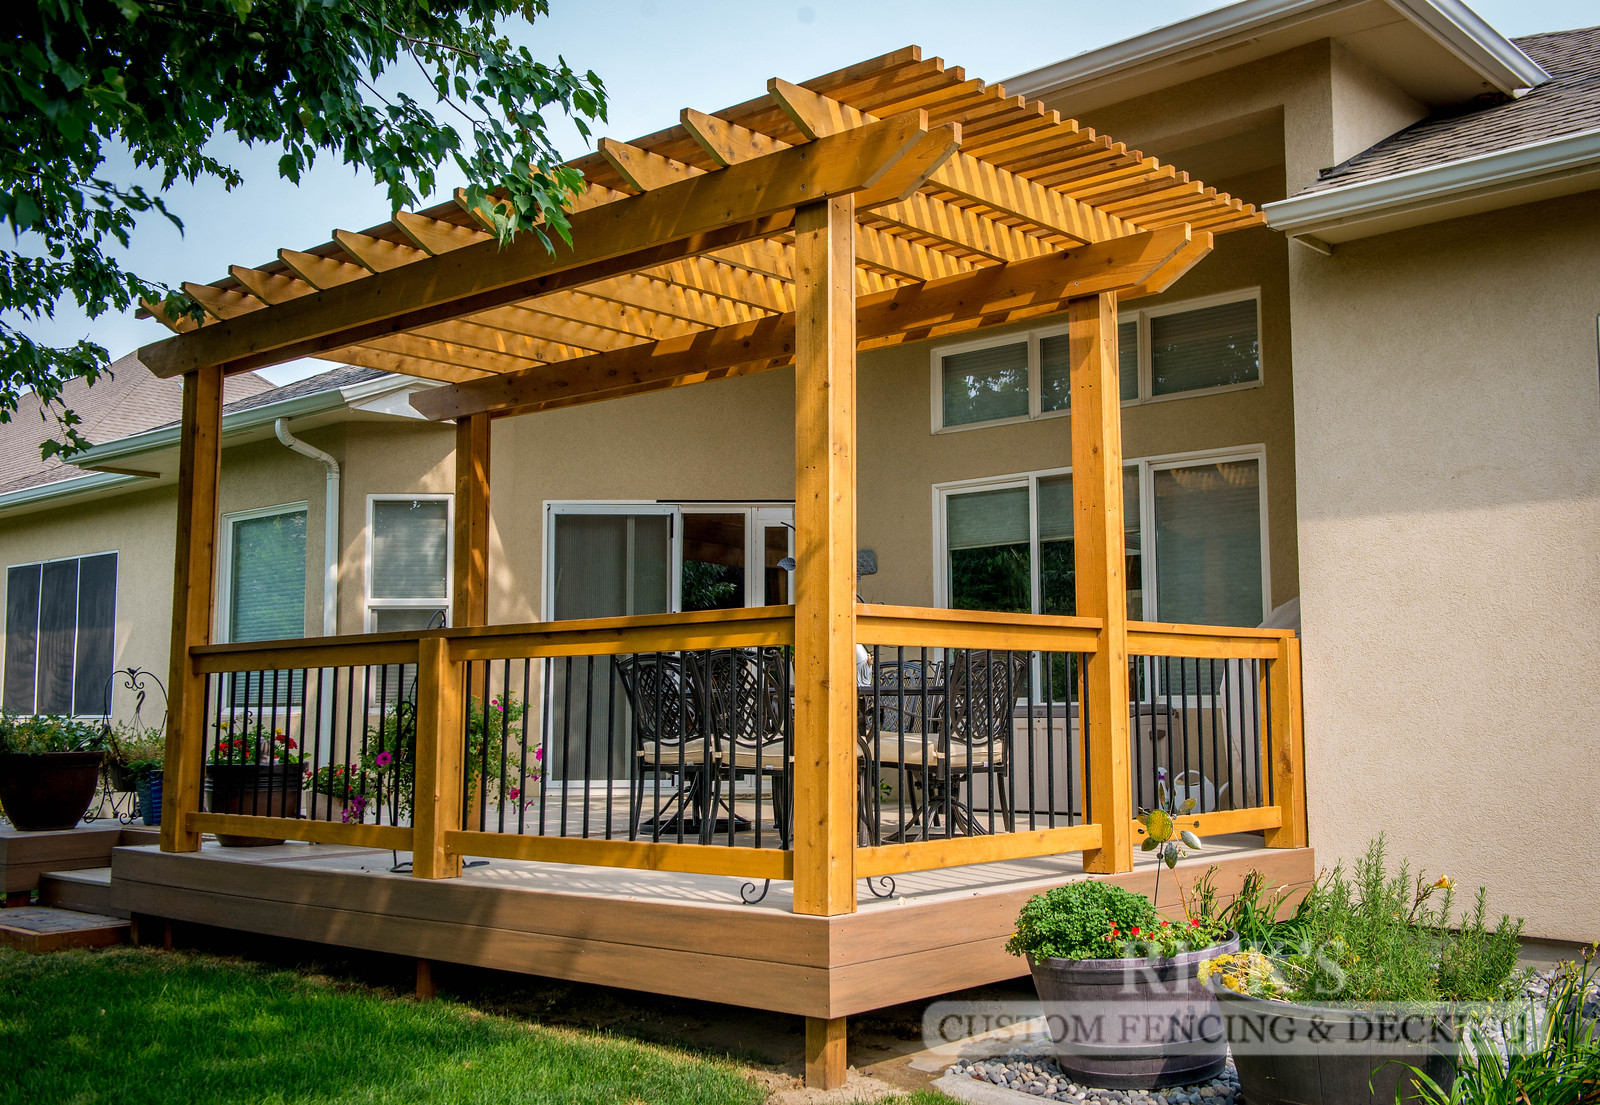 1560 - Cedar Handrail with Aluminum Balusters